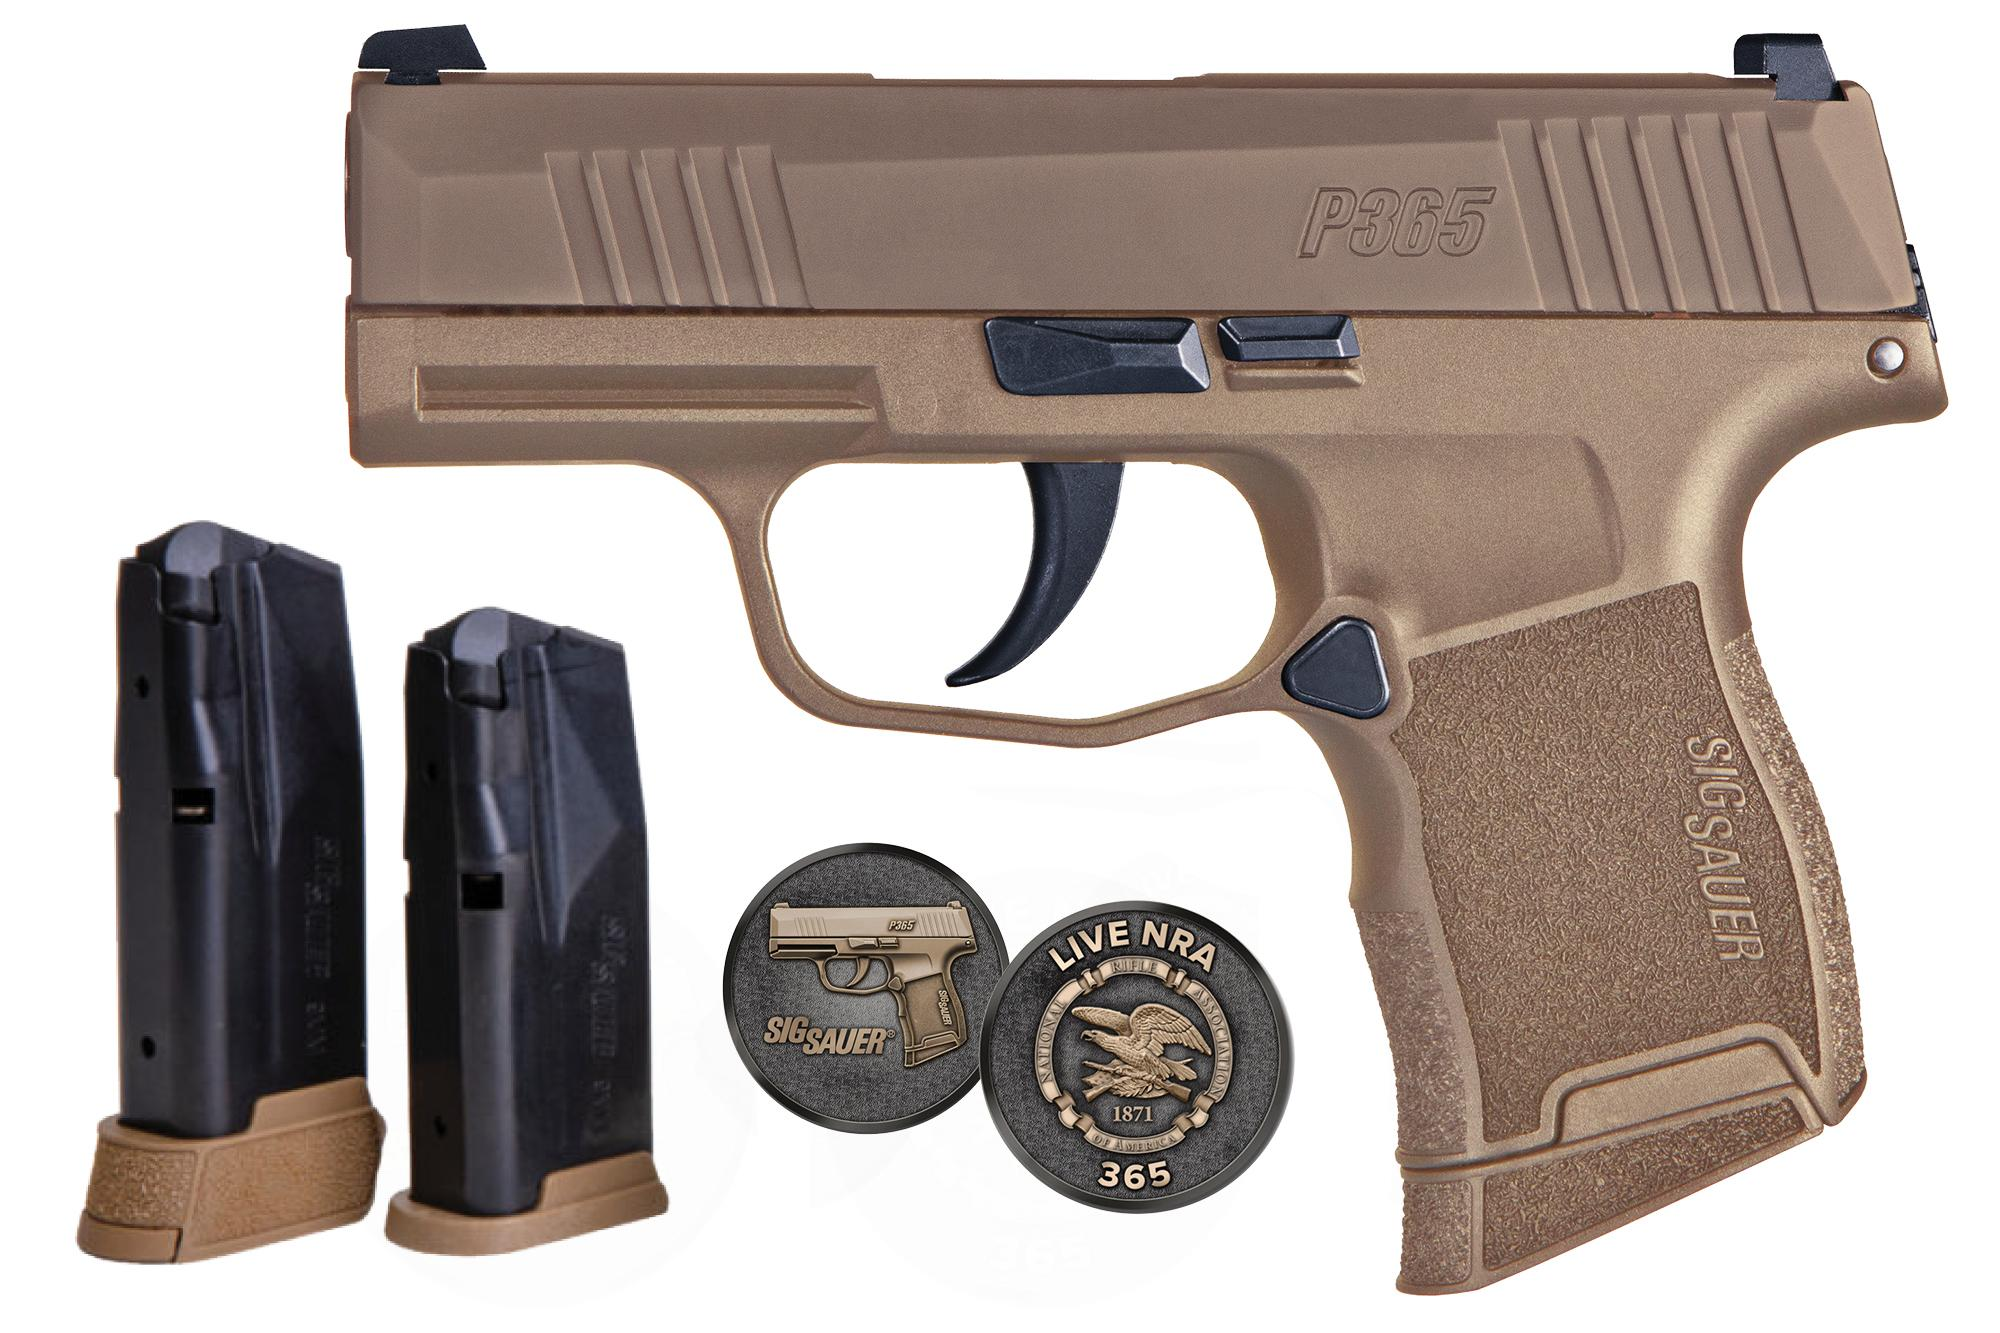 P365 9MM 10+1 COYOTE NRA NS | 365-9-COYXR3-NRA19 / 3 MAGS